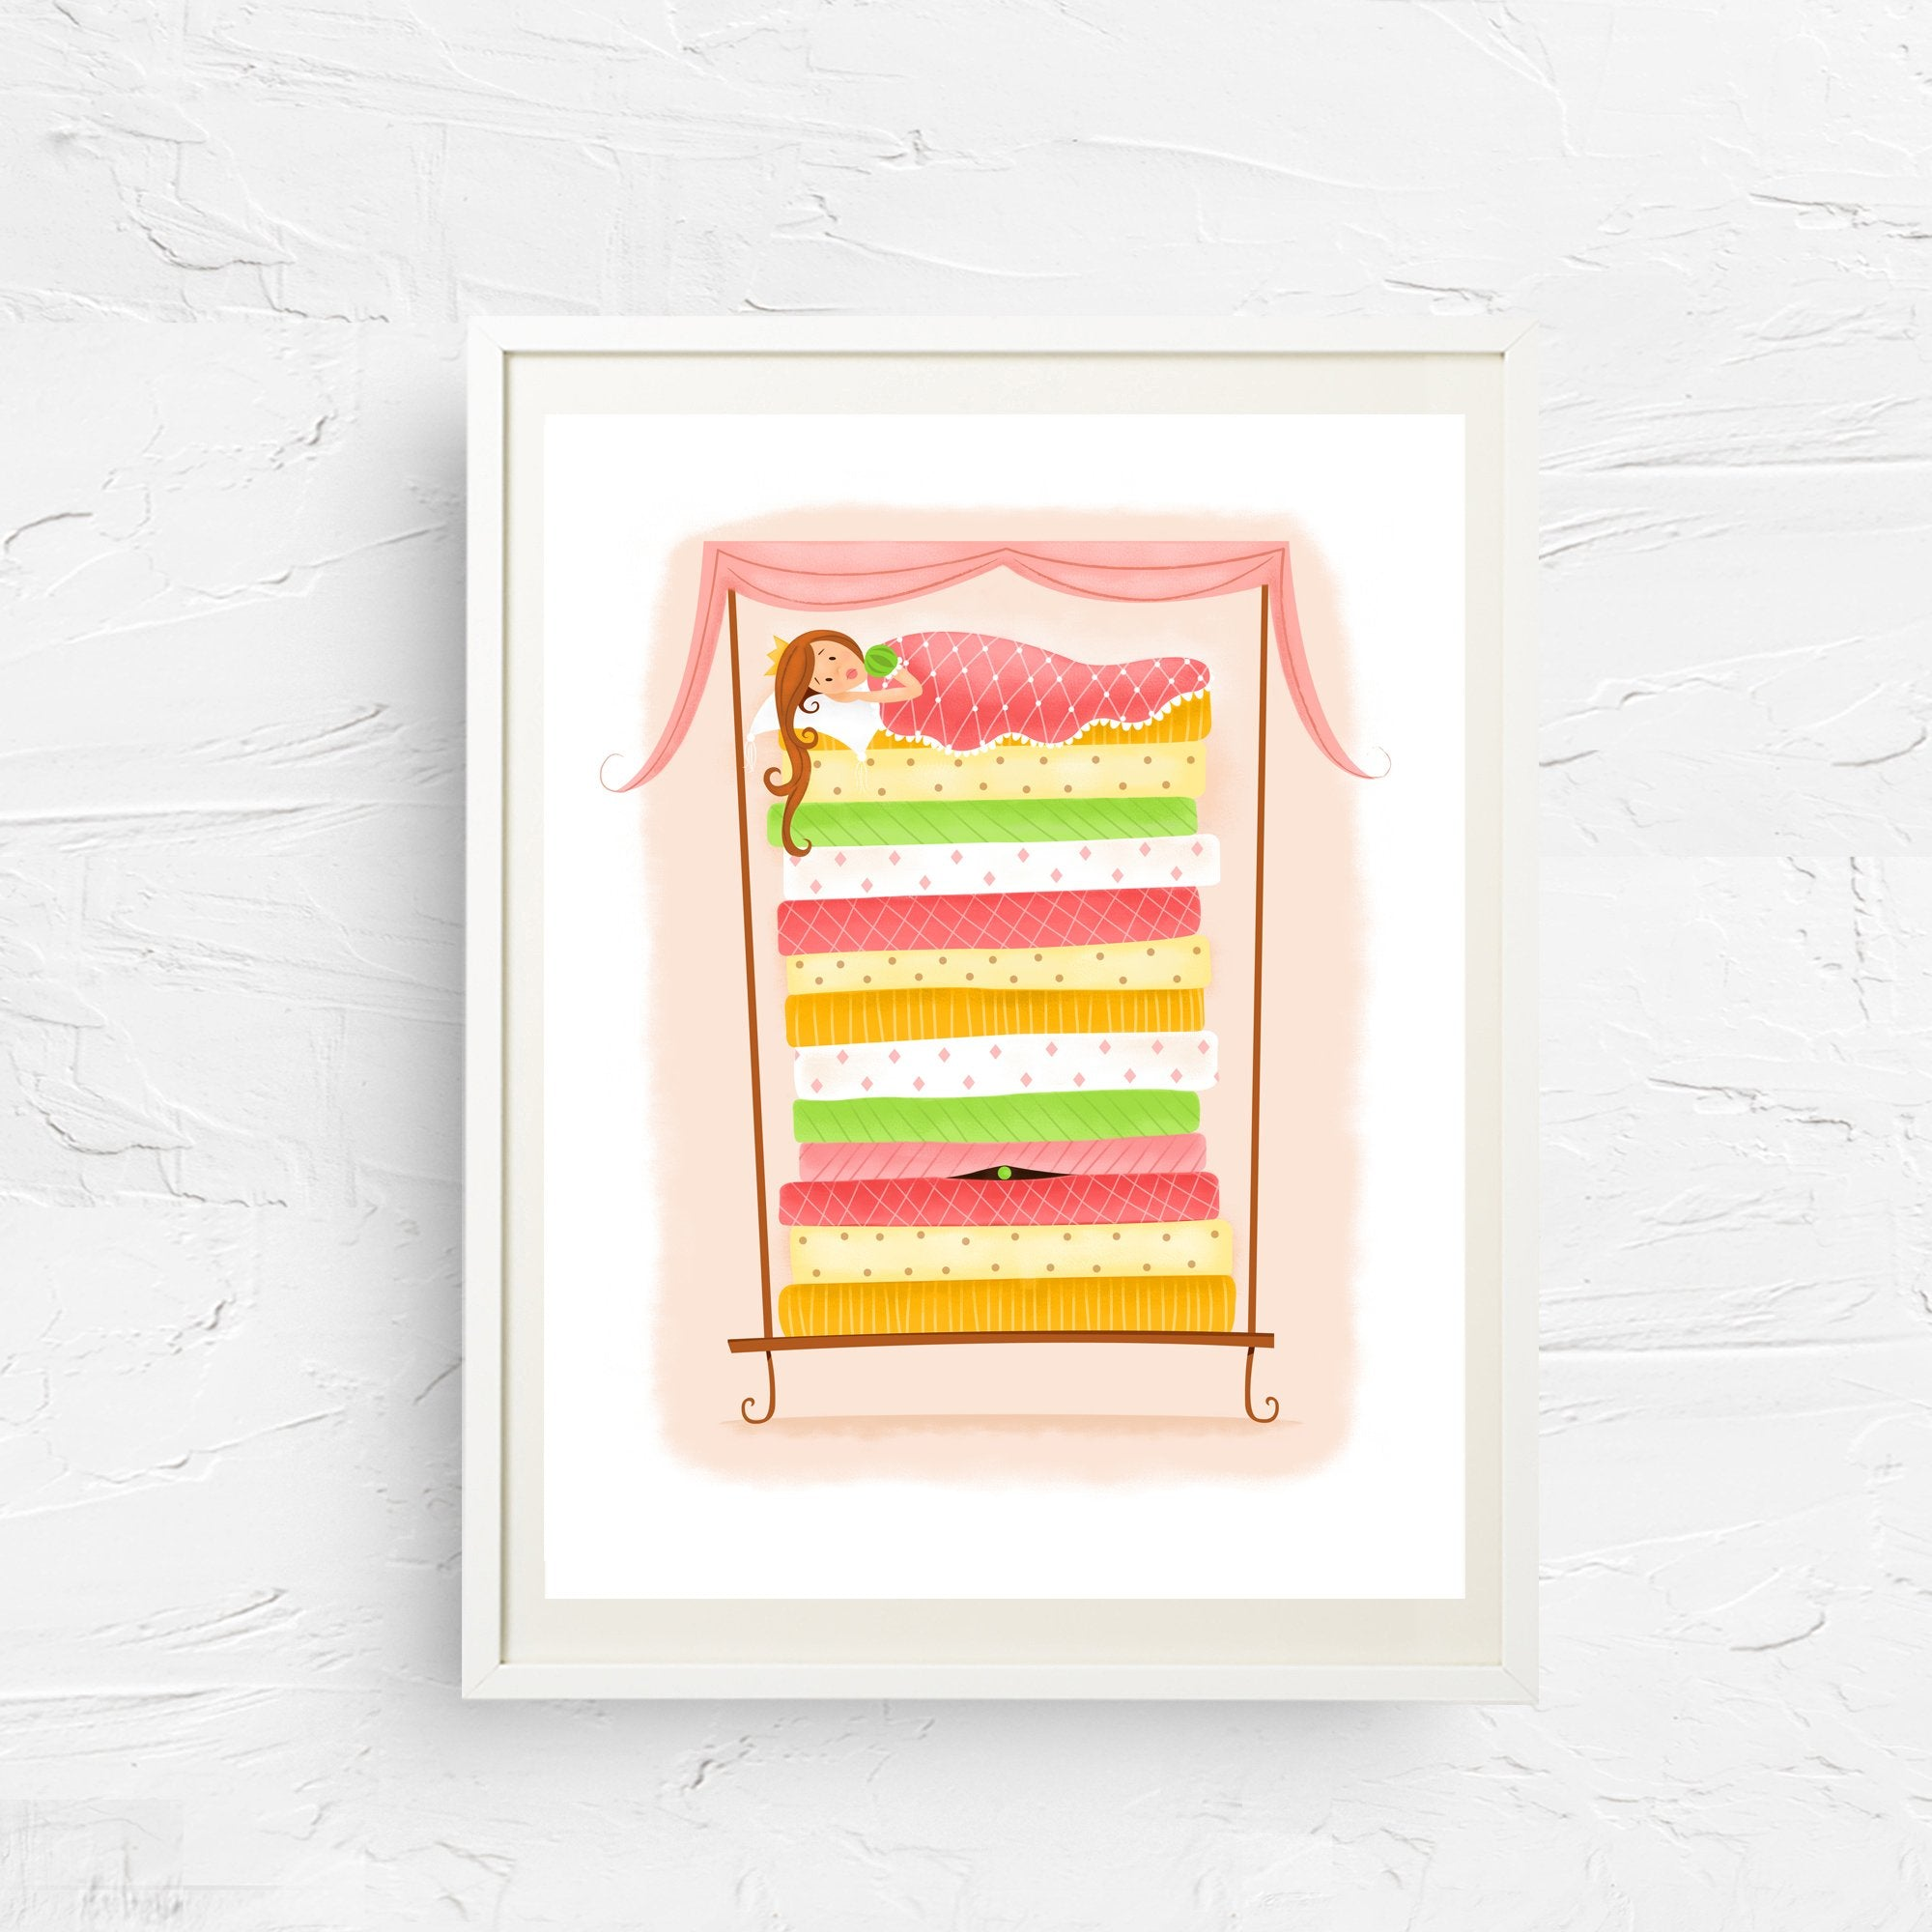 8x10, 11x14, art print, physical print, wall decor, free shipping, sale, coupon code, cinderella, fairytale print, nursery print, children's art, princess and the pea